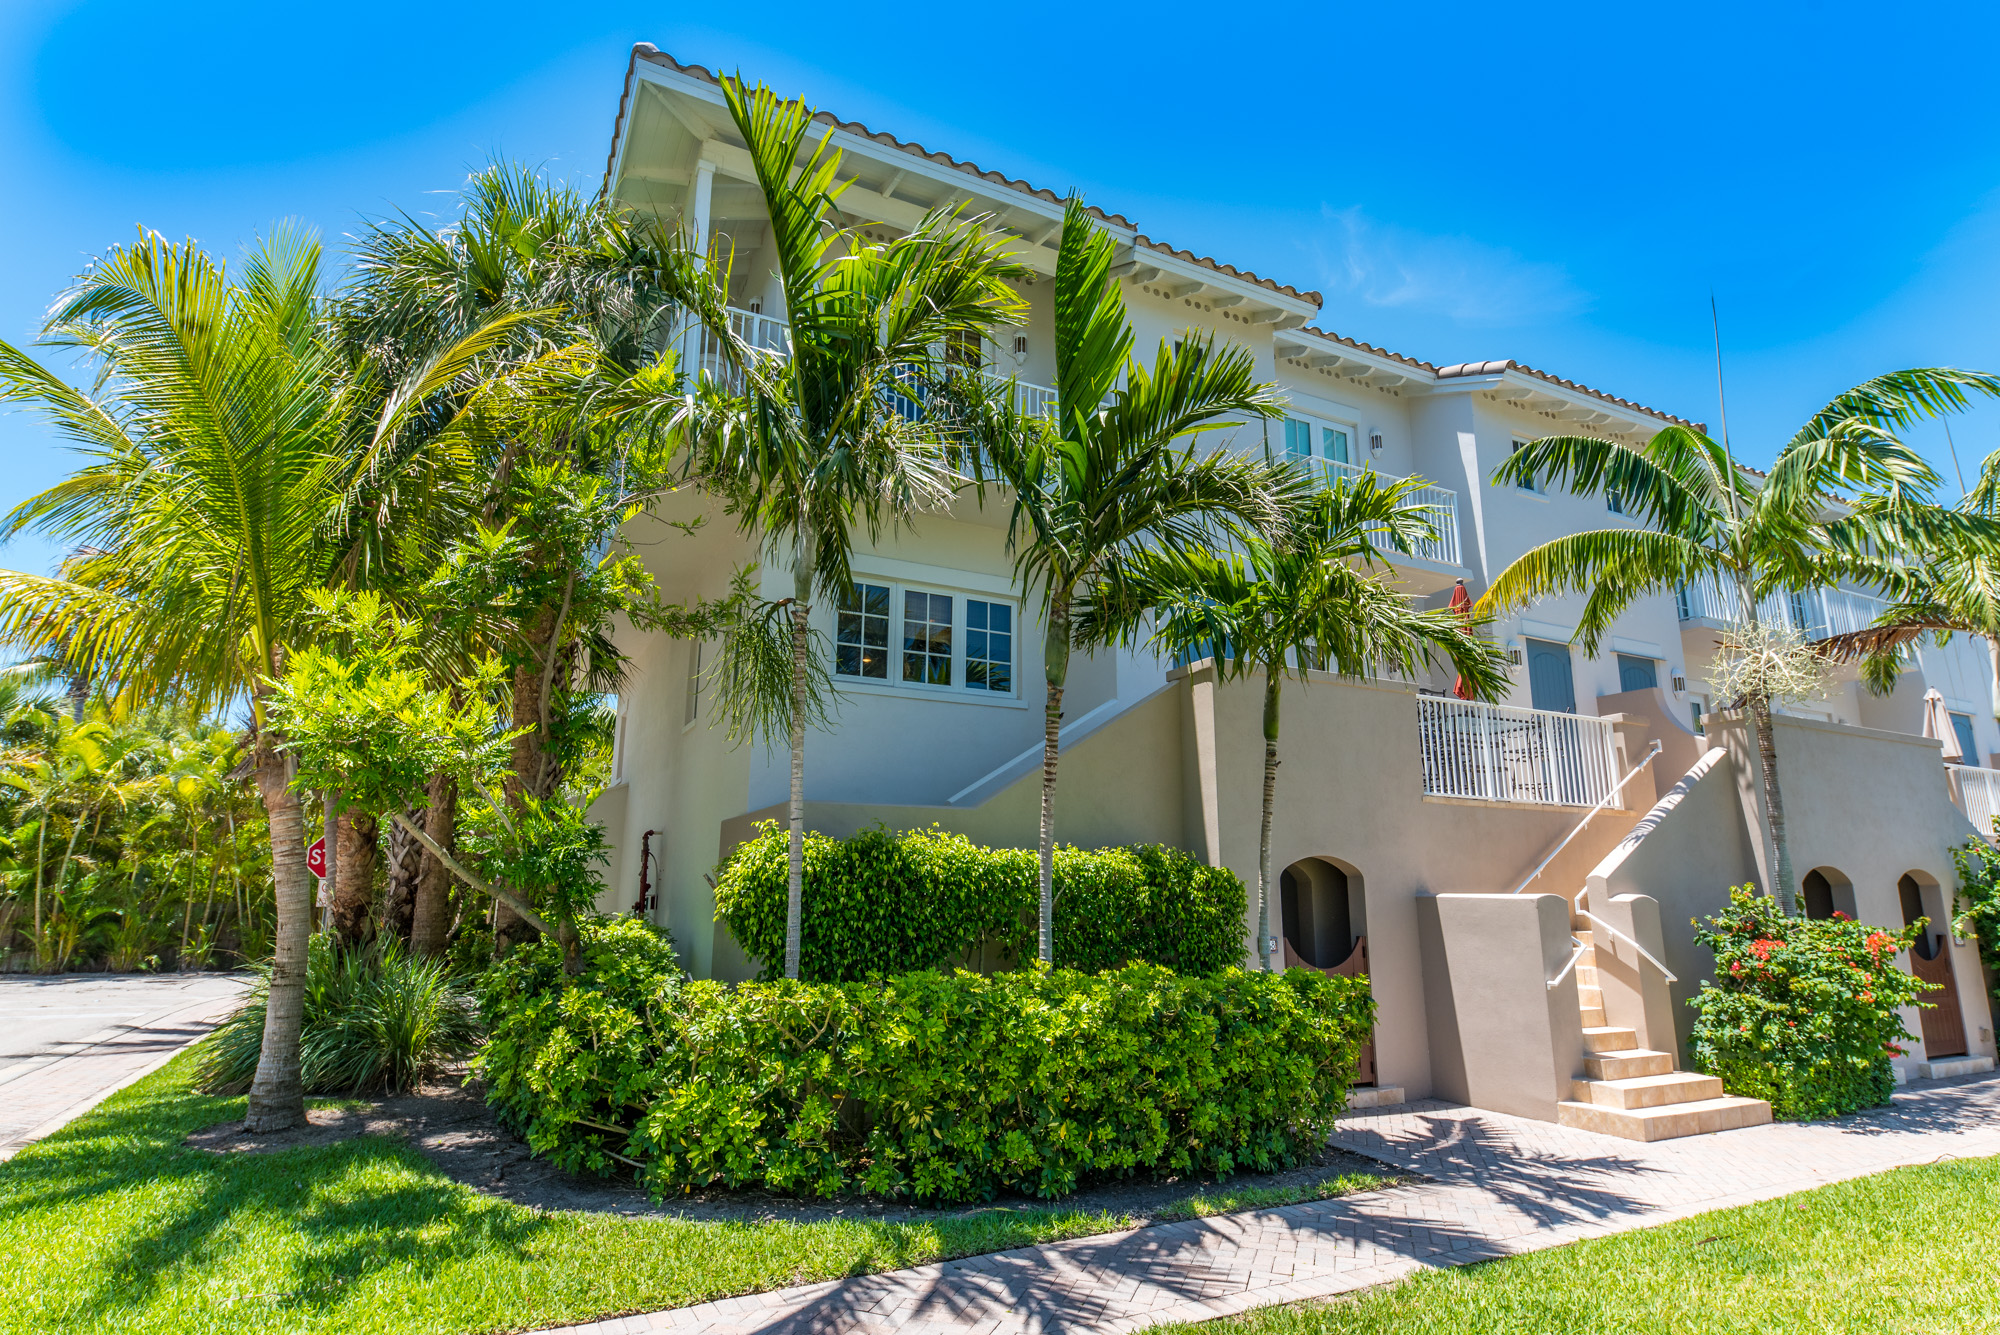 Coconut Cove Marina - Oceanside Realty Partners